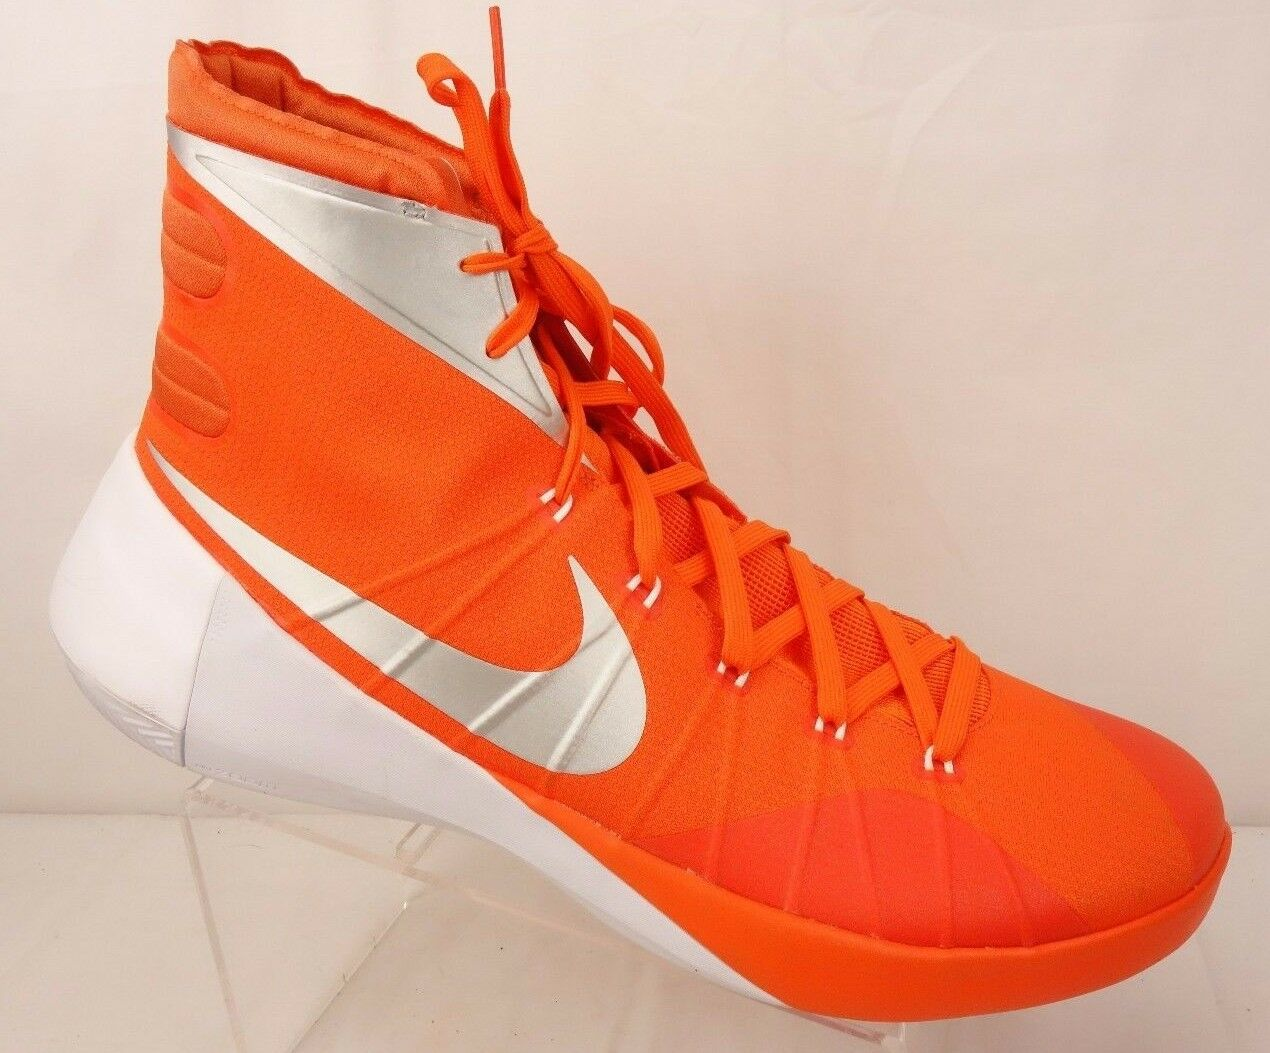 NEW NIKE Hyperdunk Basketball Shoes Men's 17.5 M Game Orange 812944-801 Wild casual shoes